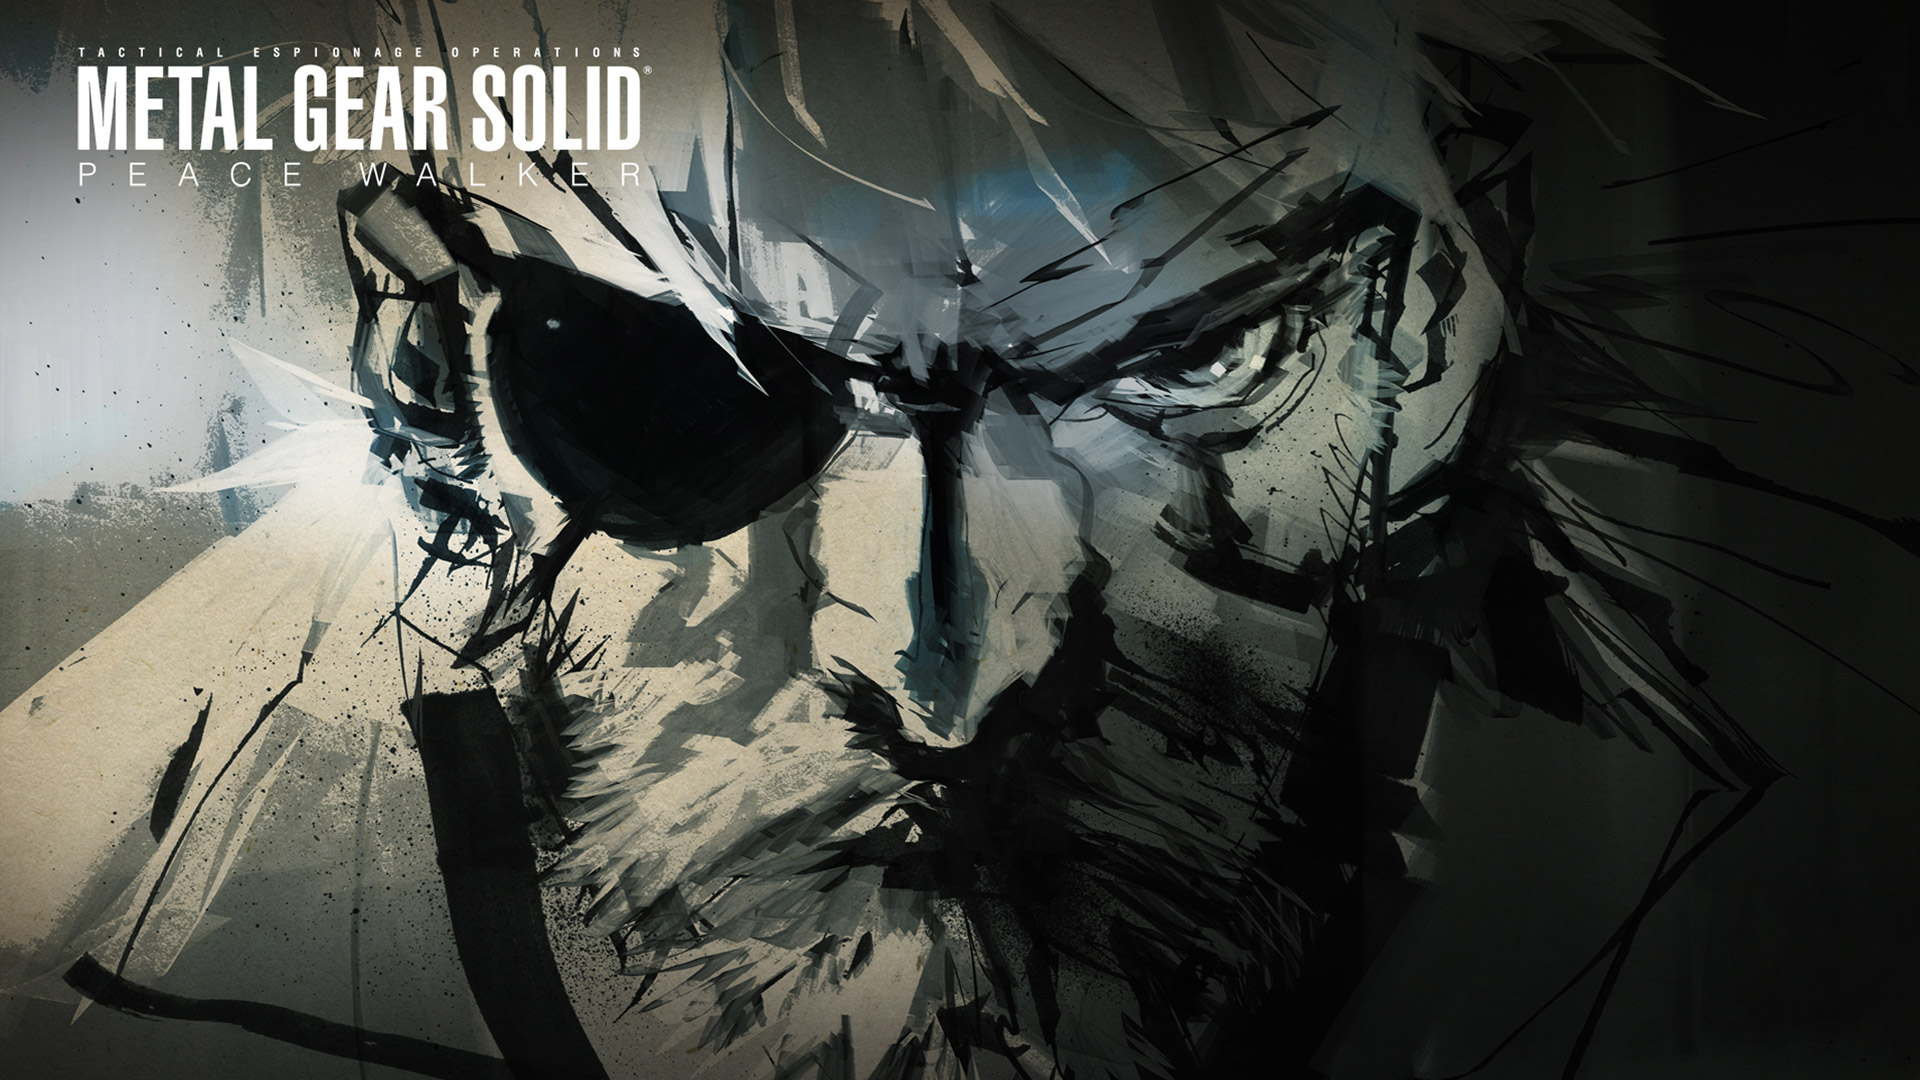 metal gear solid peace walker wallpaper 8 | wallpapersbq